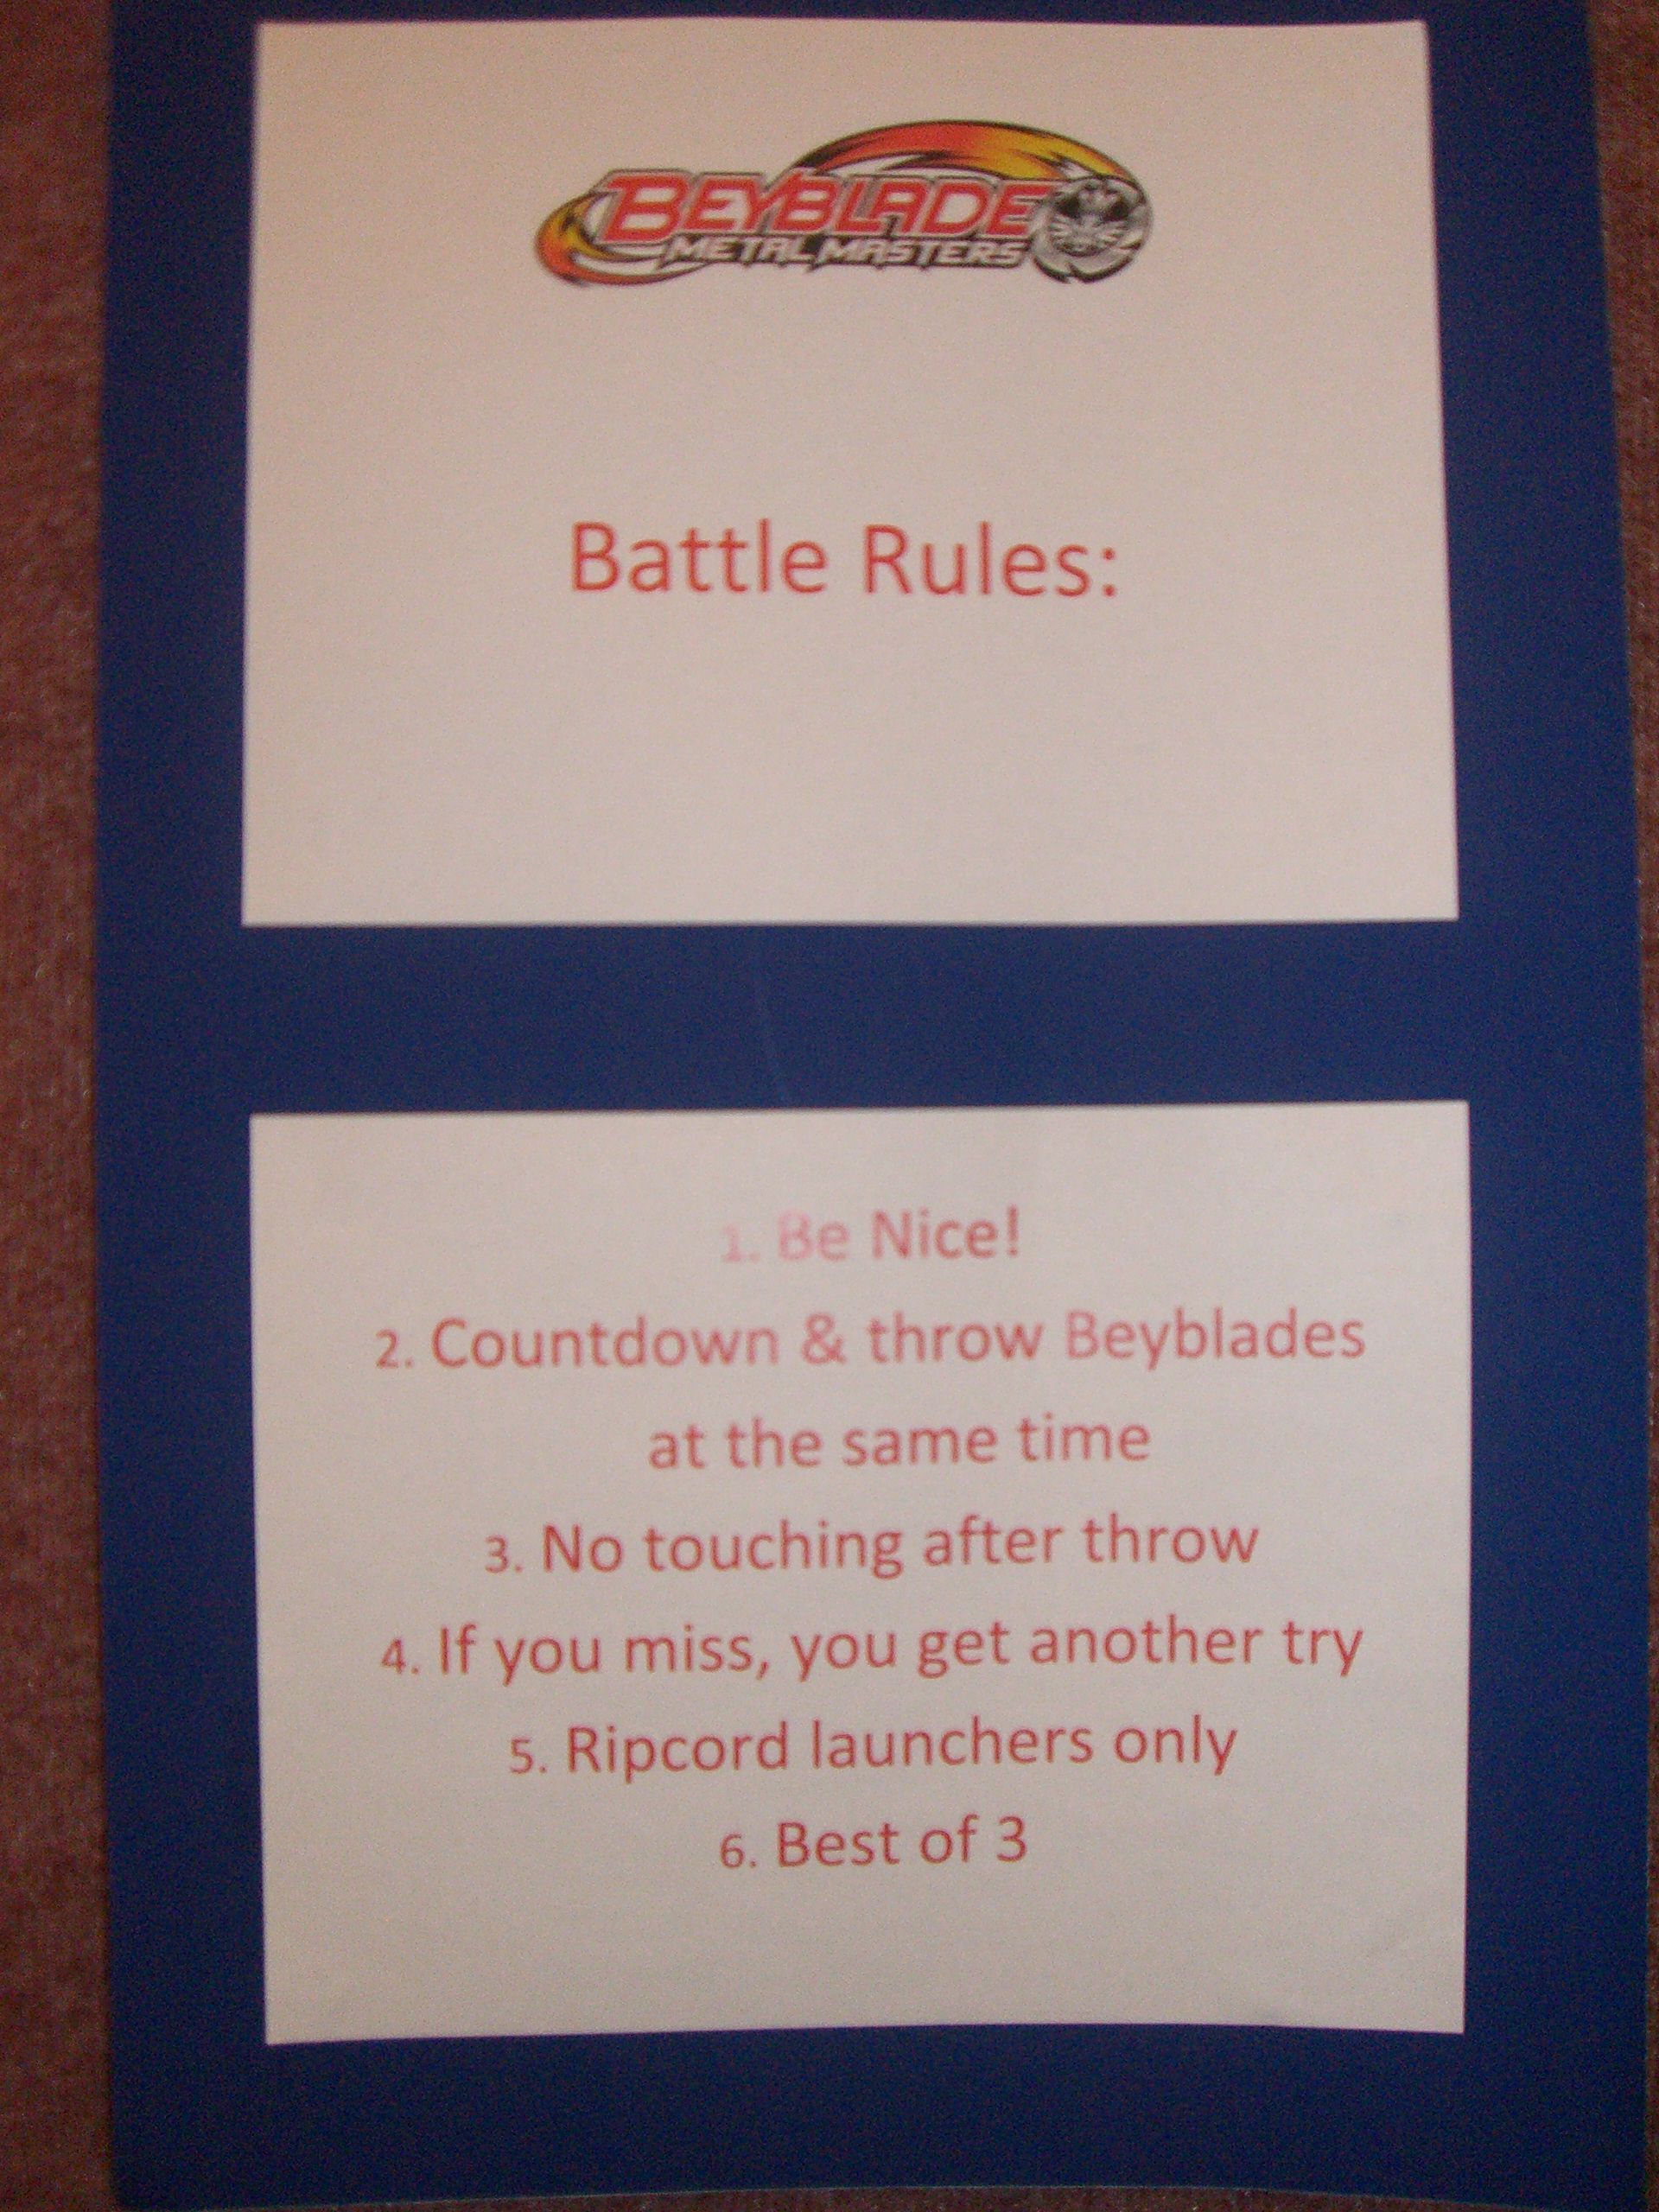 Beyblade Party The Battle Rules Jebbie S 7th Birthday